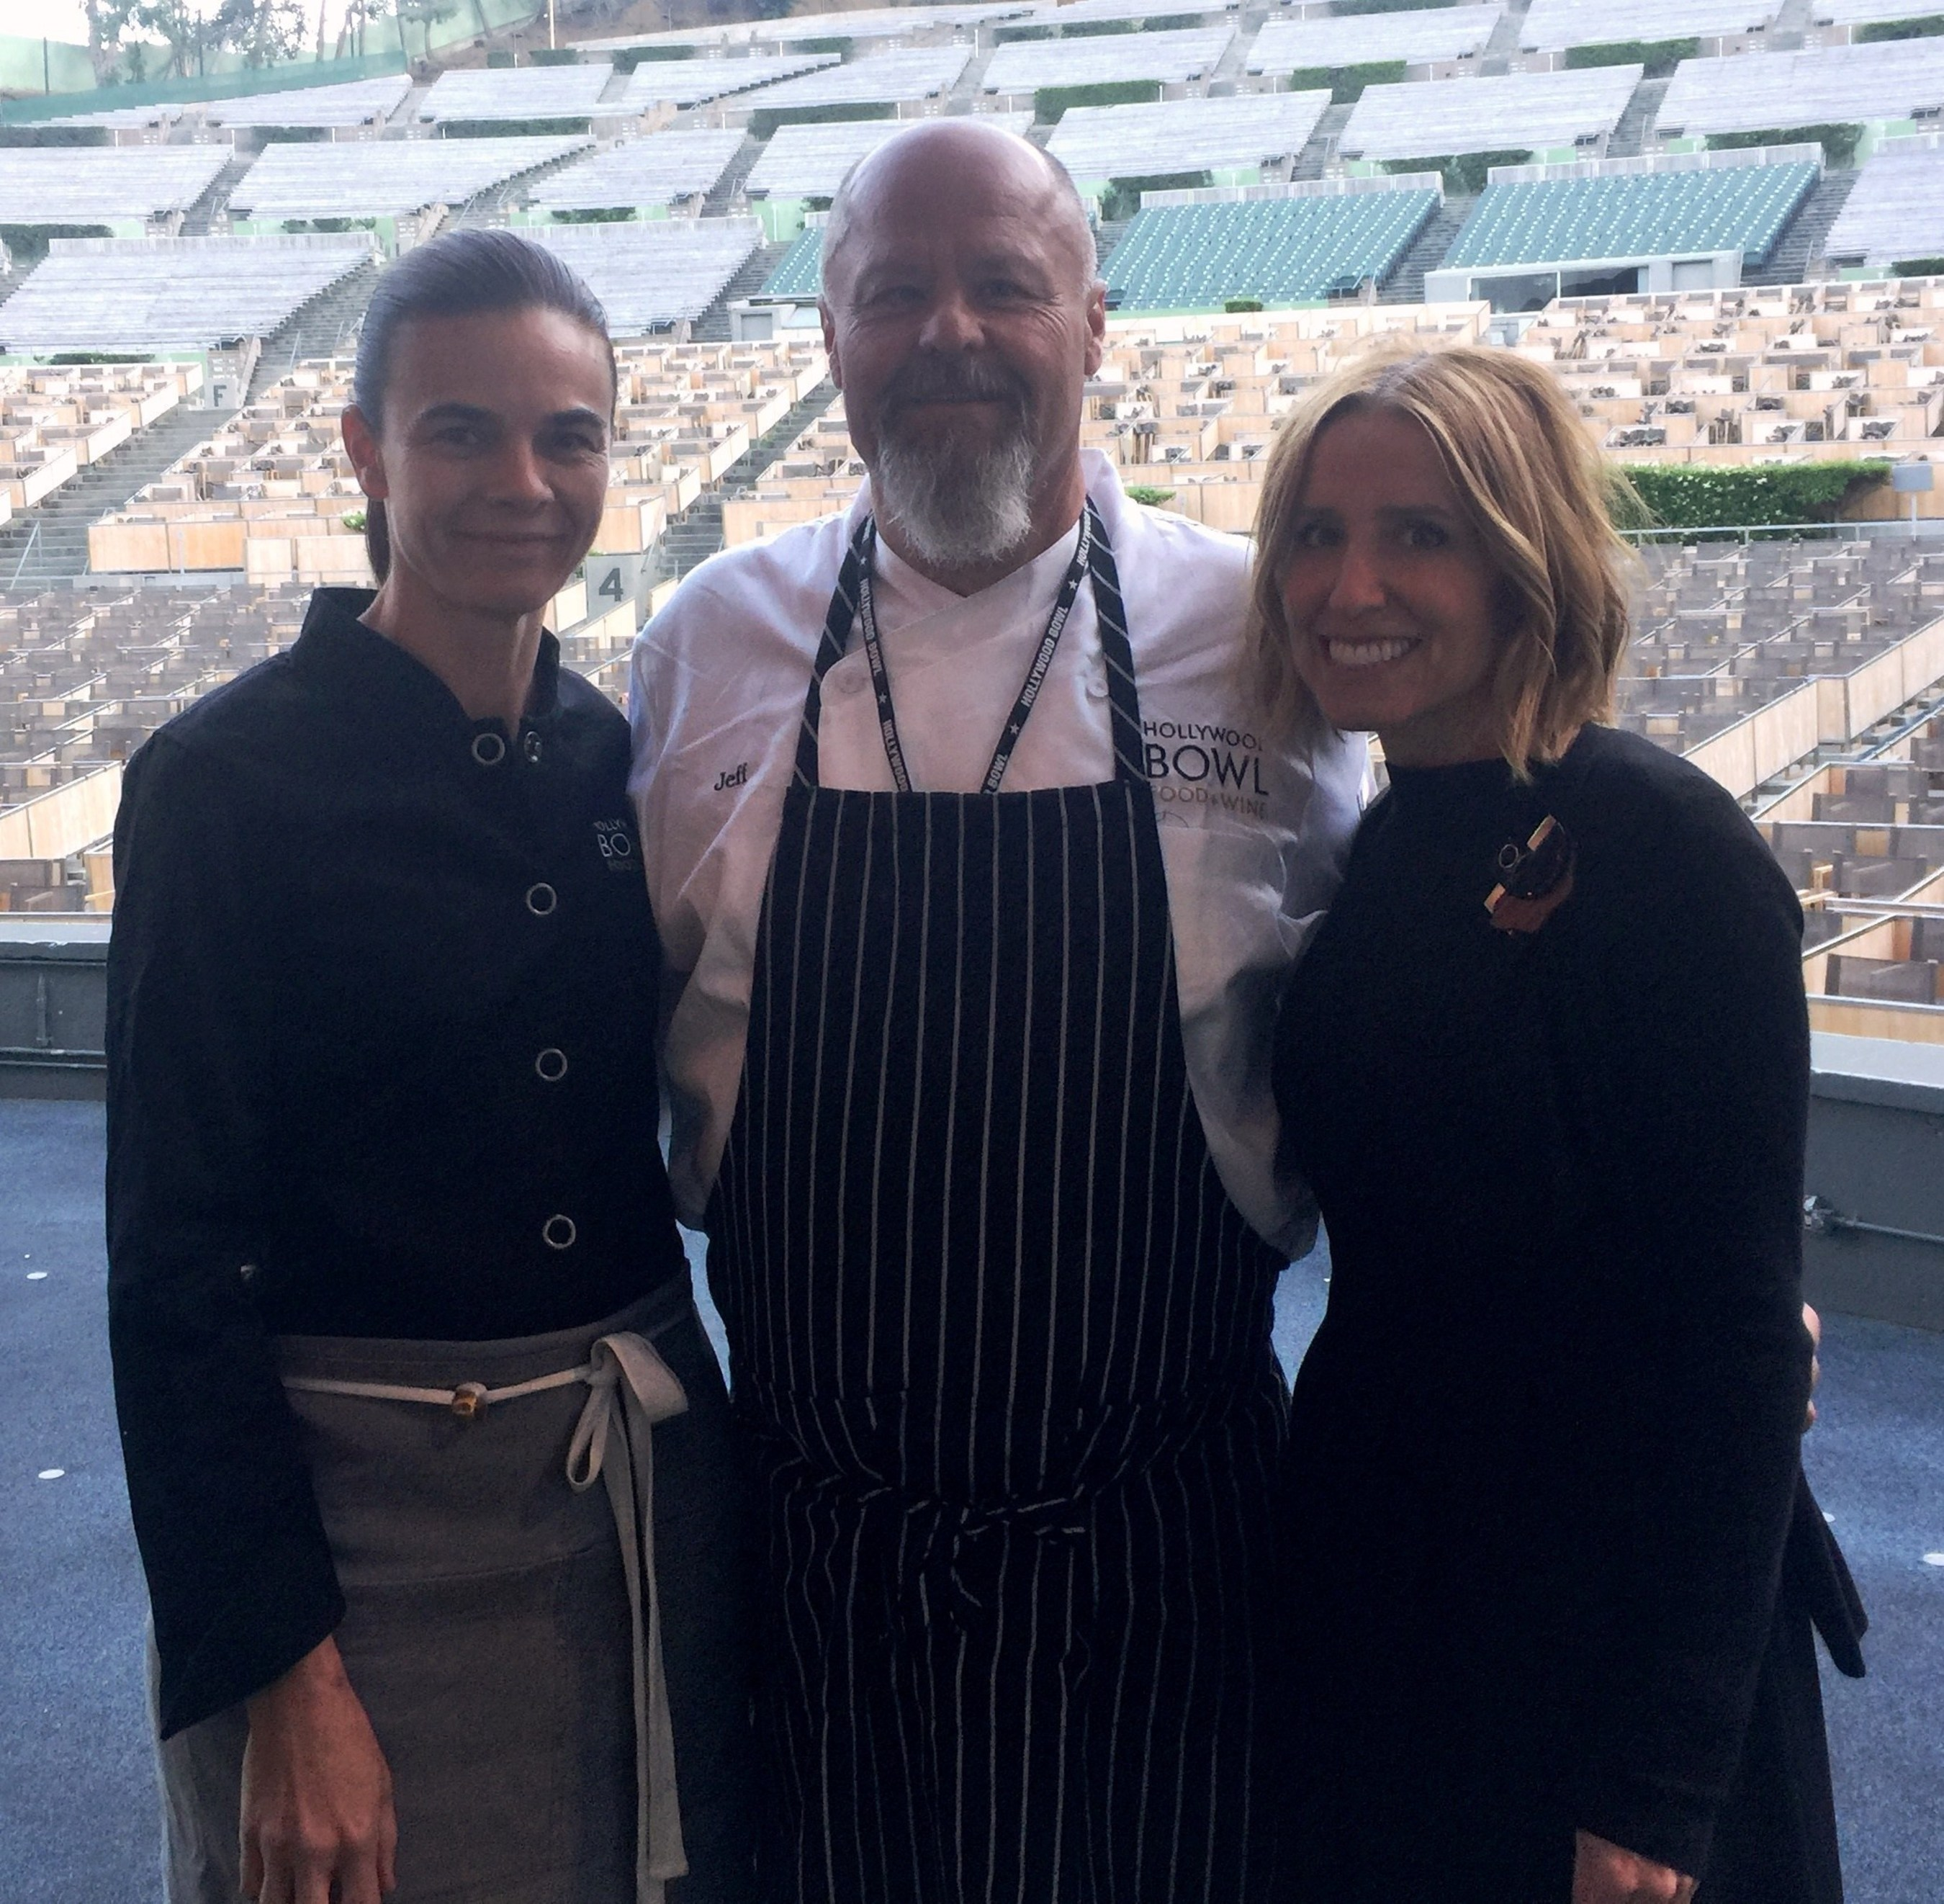 James Beard Award-winning chef Suzanne Goin, Executive Chef Jeff Rogers and Caroline Styne.